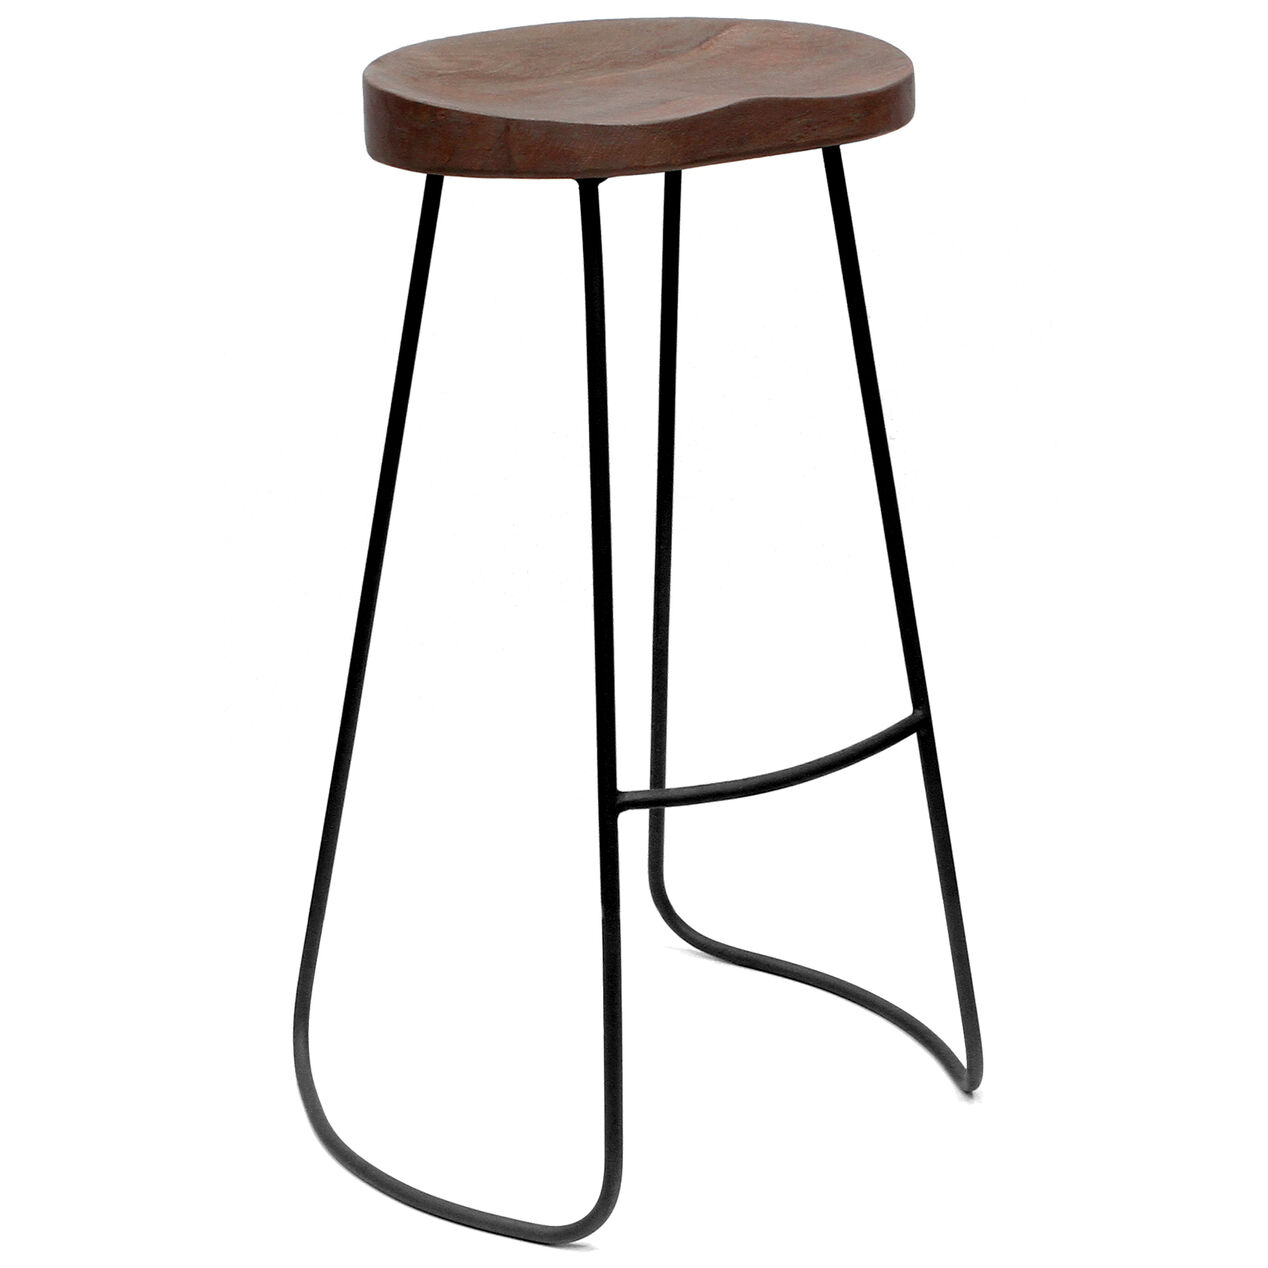 Gavin Barstool Chestnut Wood 30 in At Home : 124131315 from www.athome.com size 1268 x 1268 jpeg 65kB